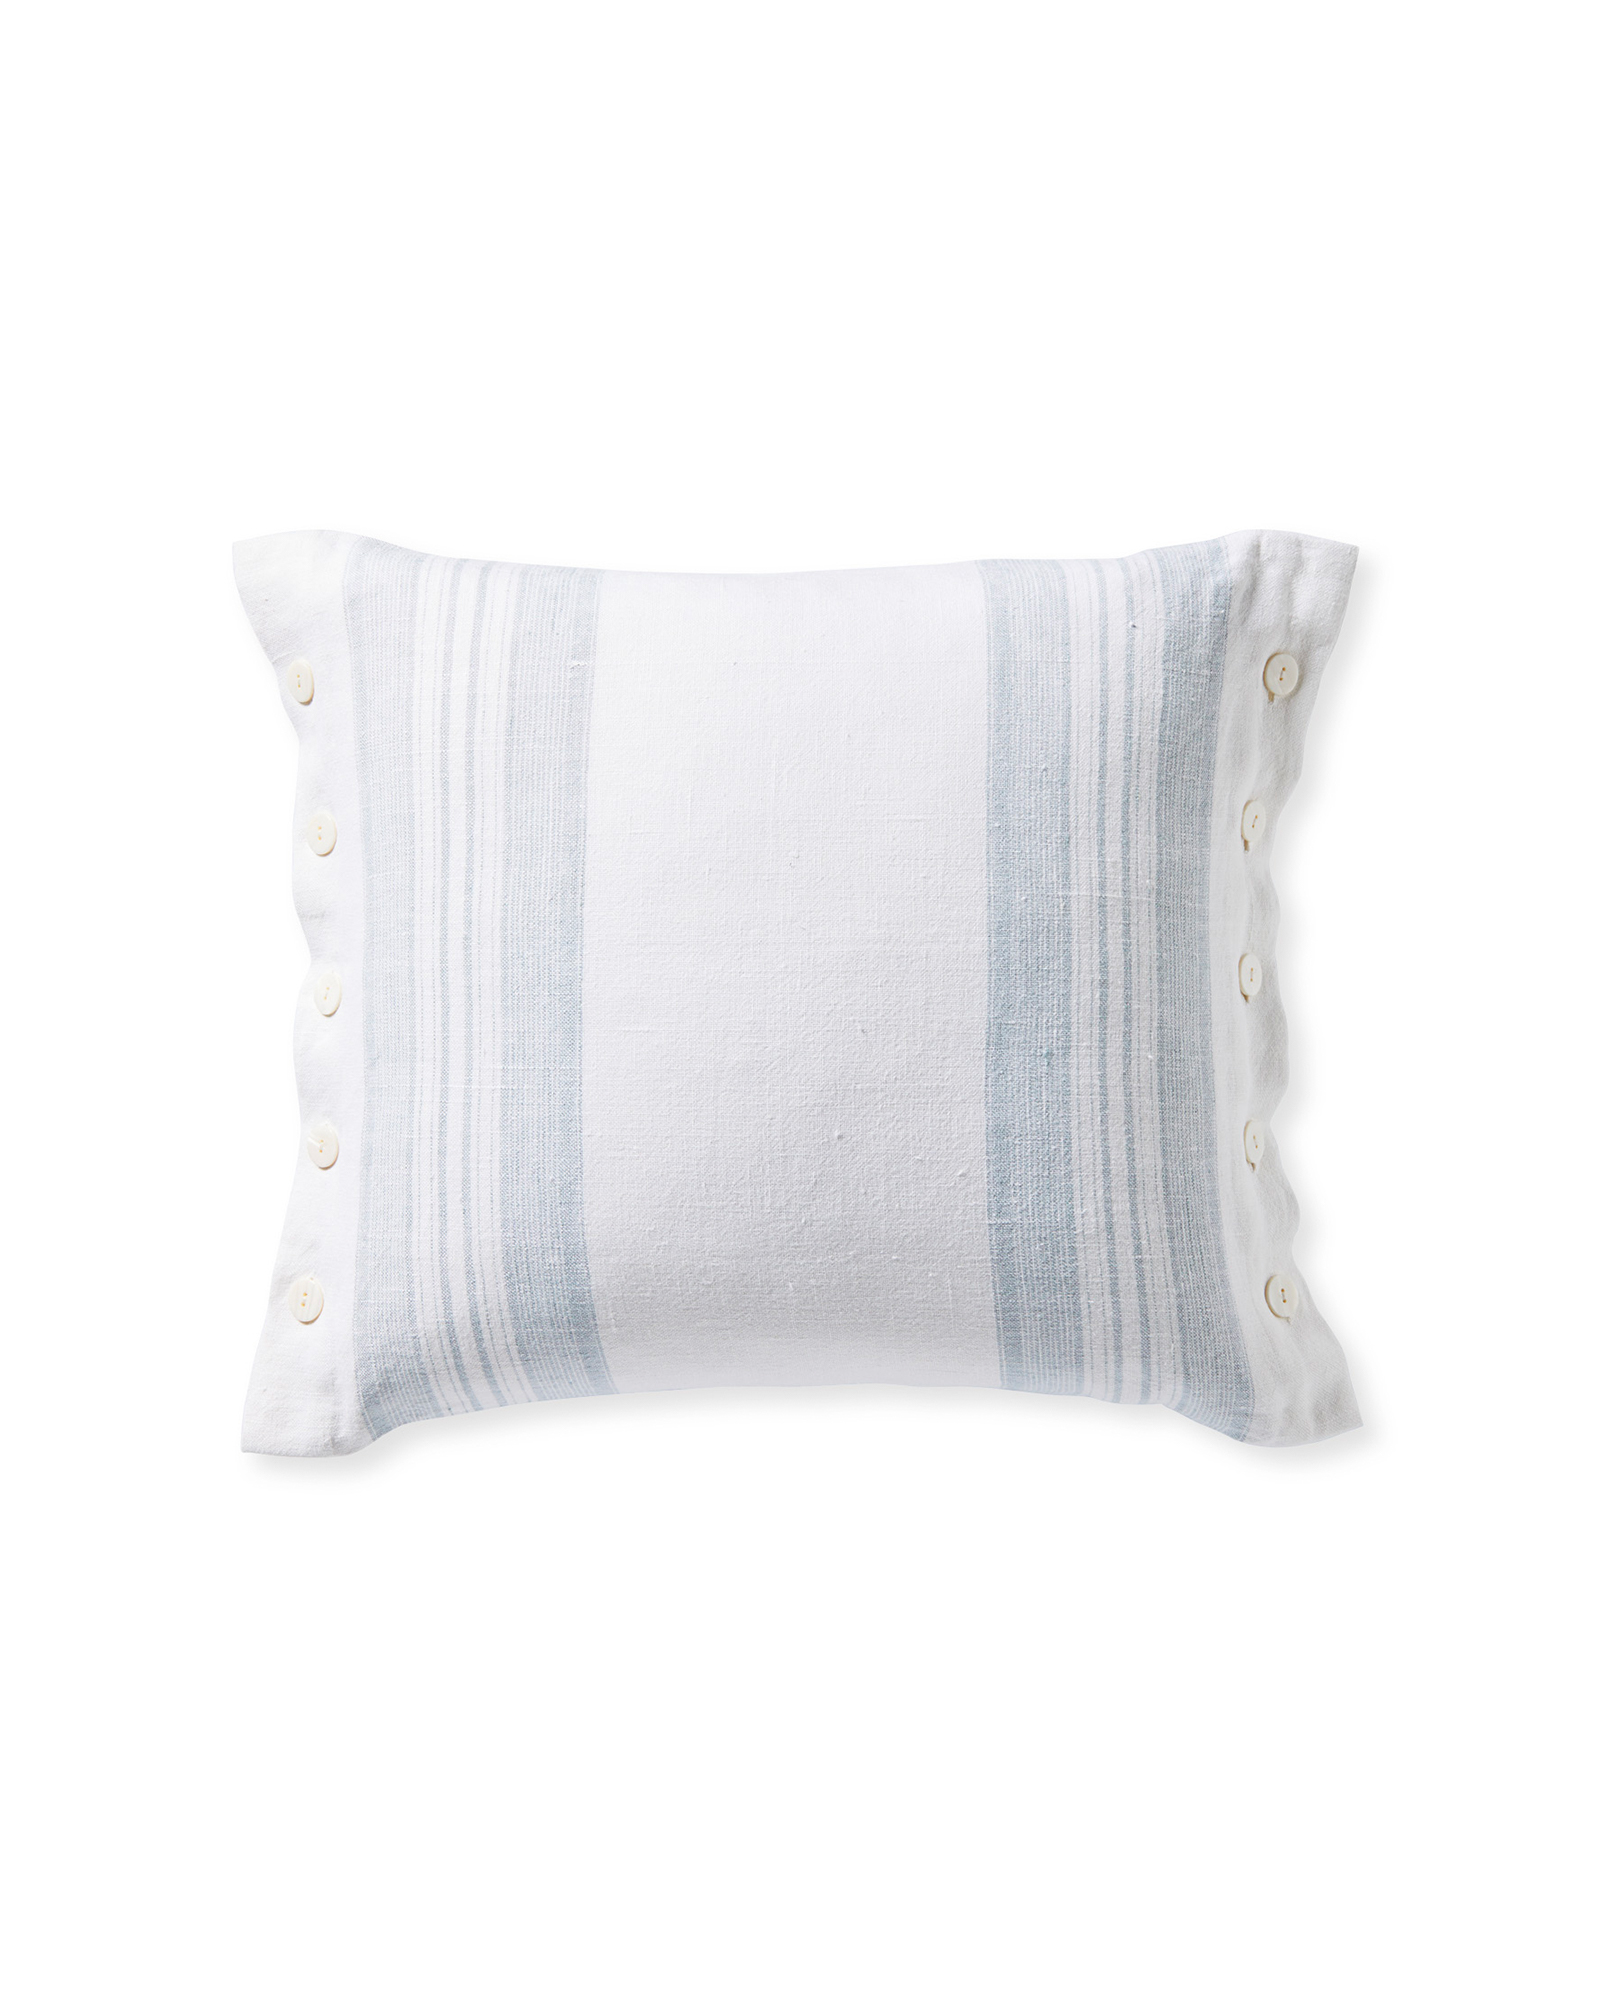 Shoreham Pillow Cover, Coastal